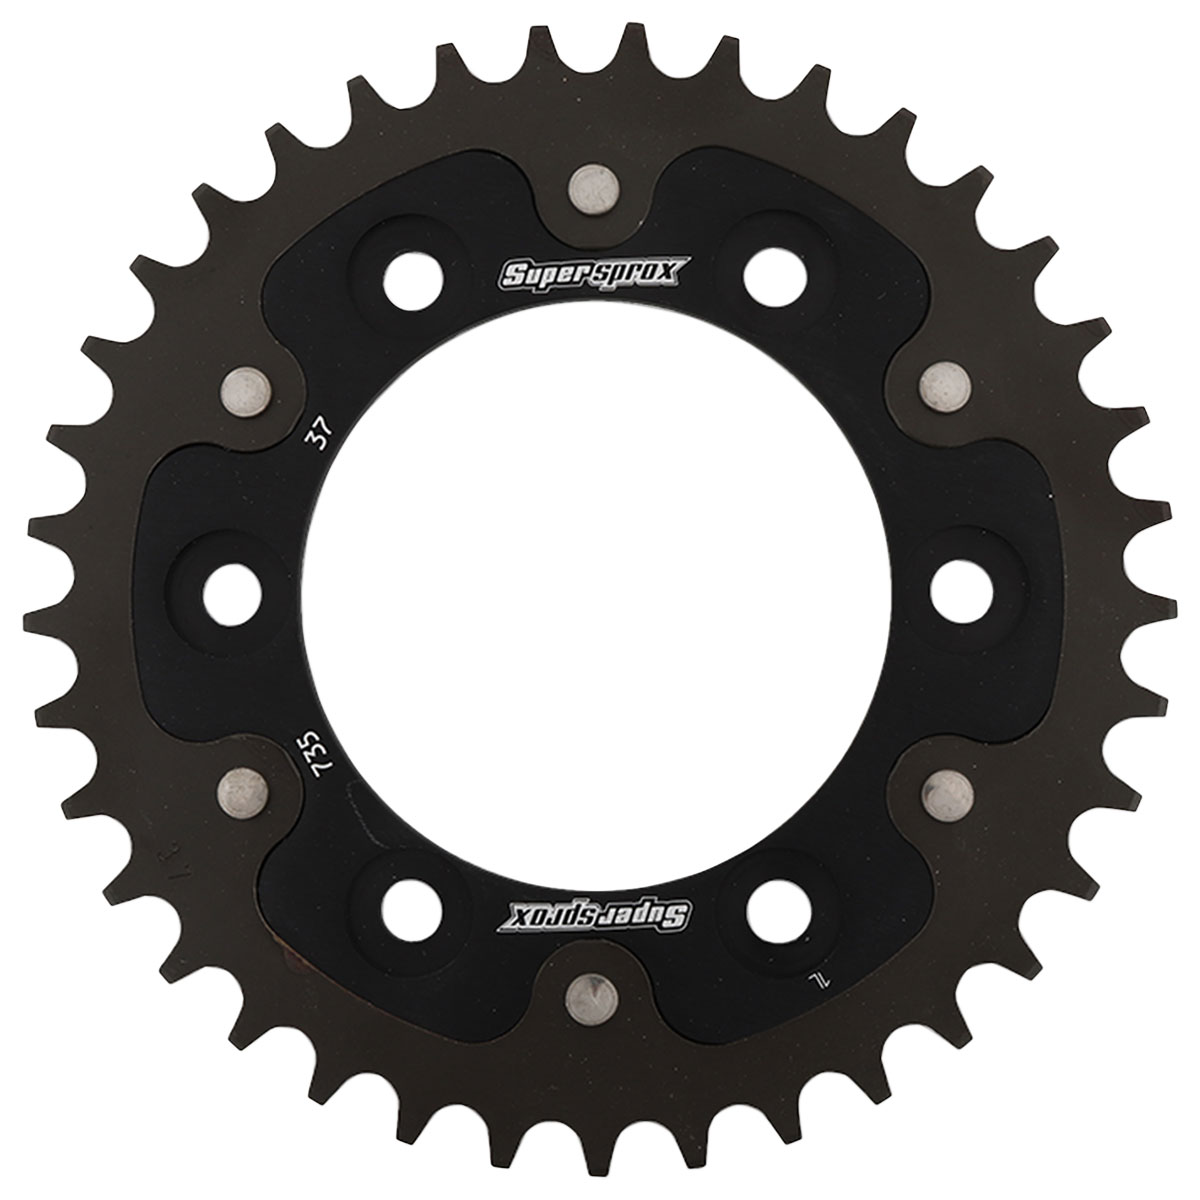 Supersprox Rear Stealth Sprocket 520 37T Black